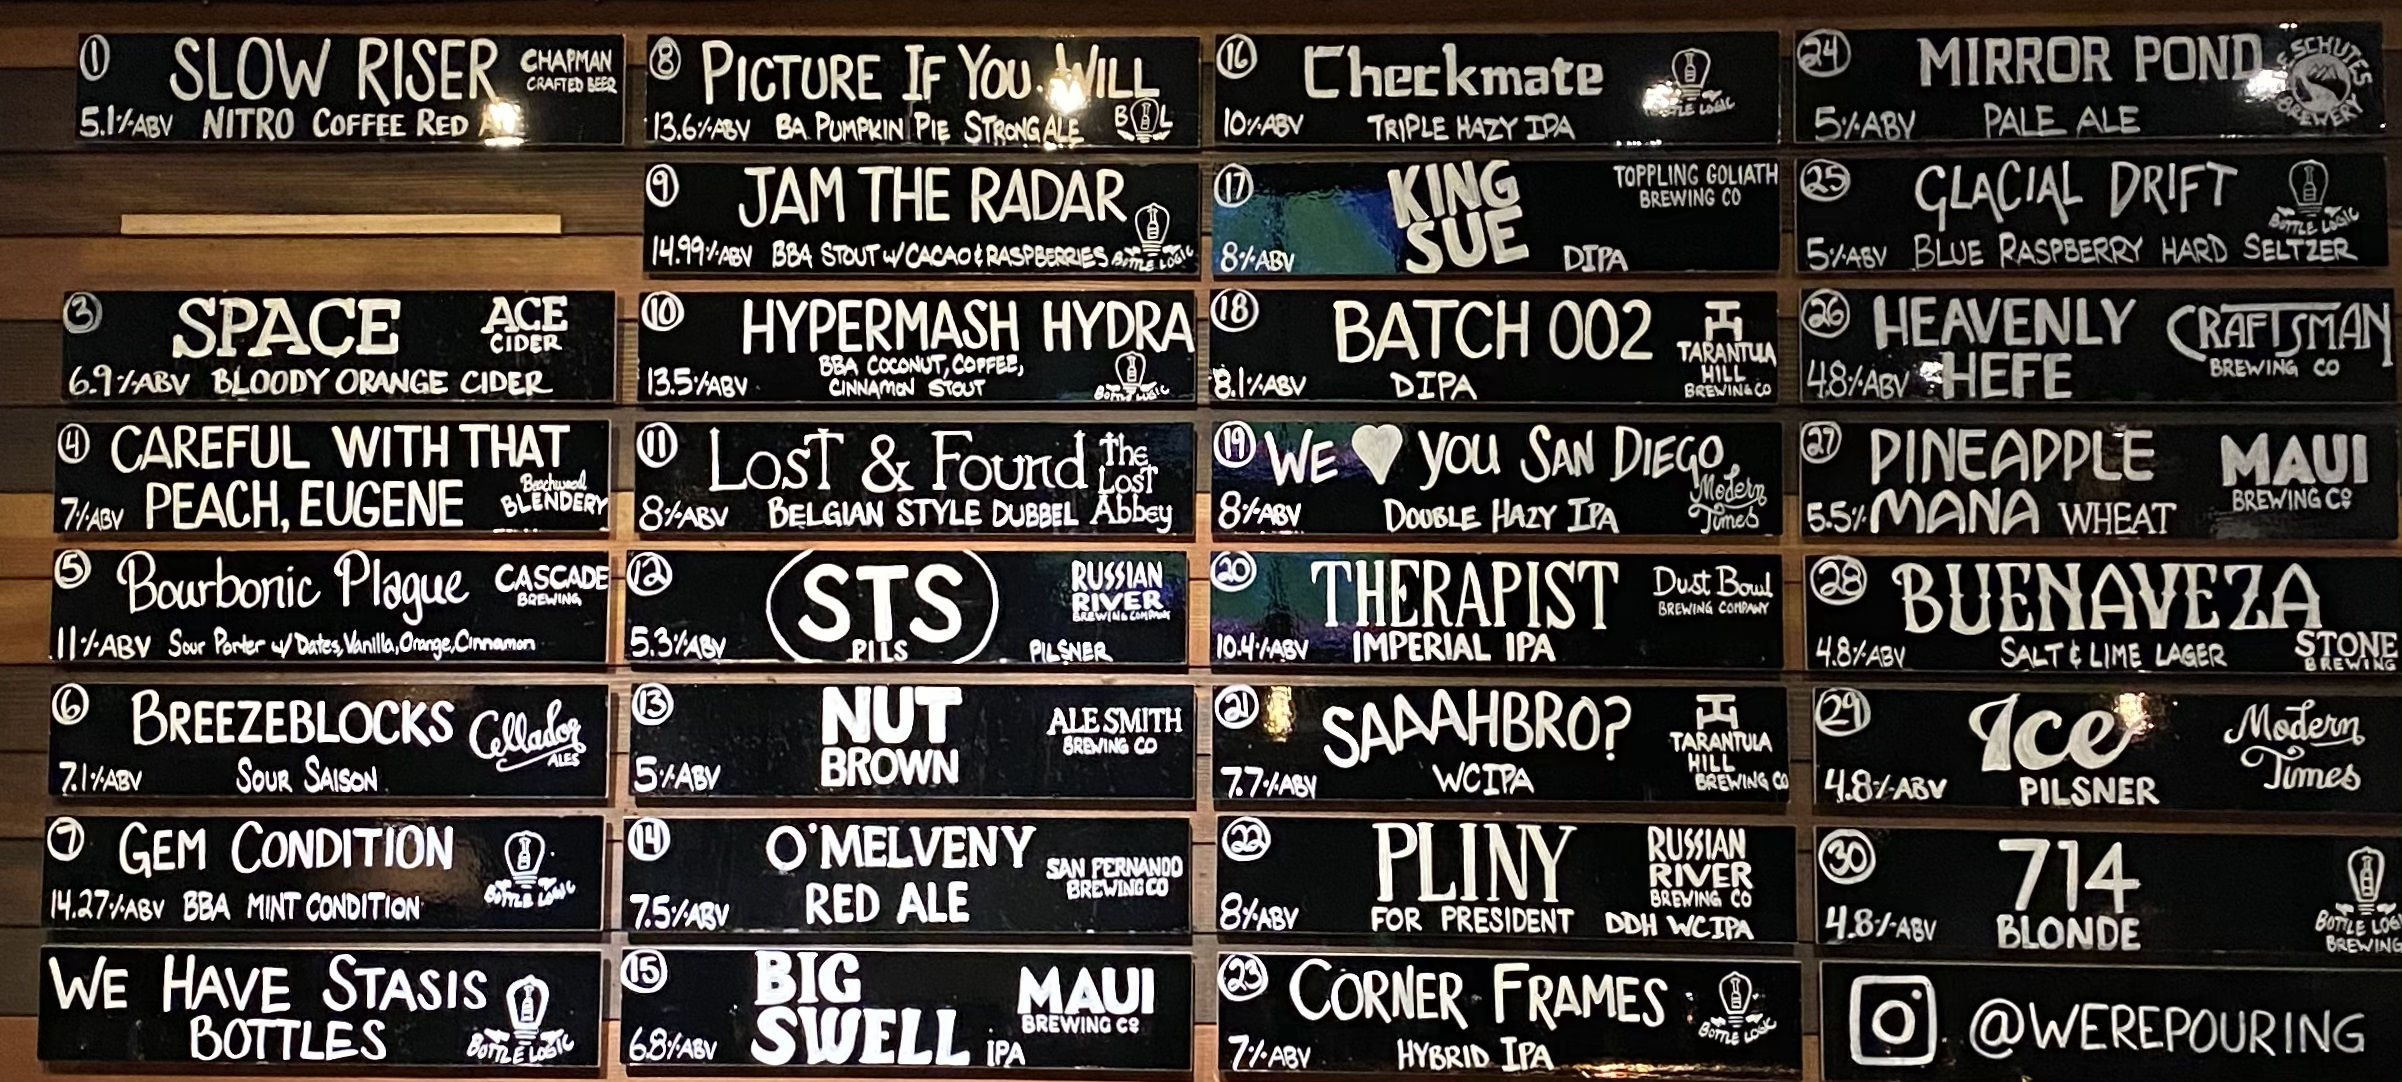 Were-Pouring-Craft-Beer-Glendale-Taplist-11-20-20-1